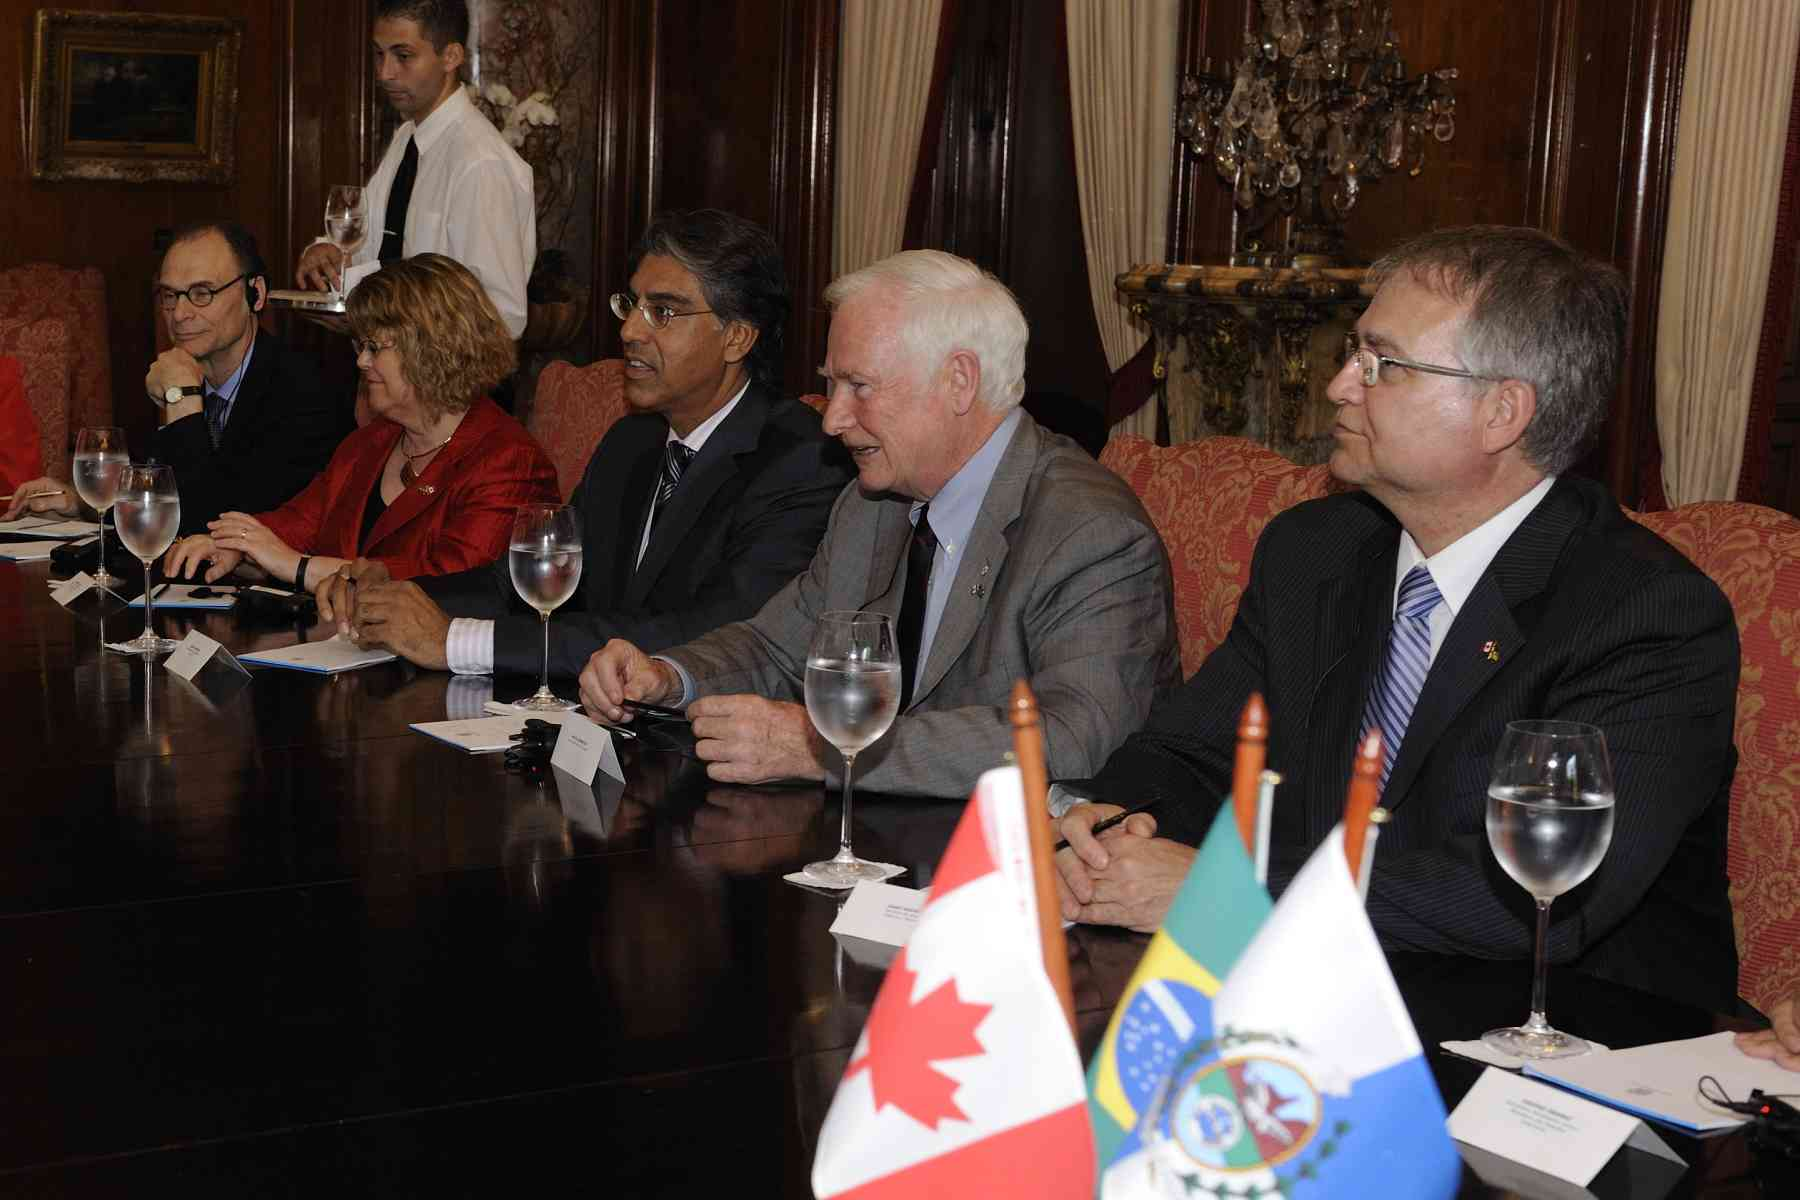 Selected members of the Canadian delegation also attended the courtesy call.